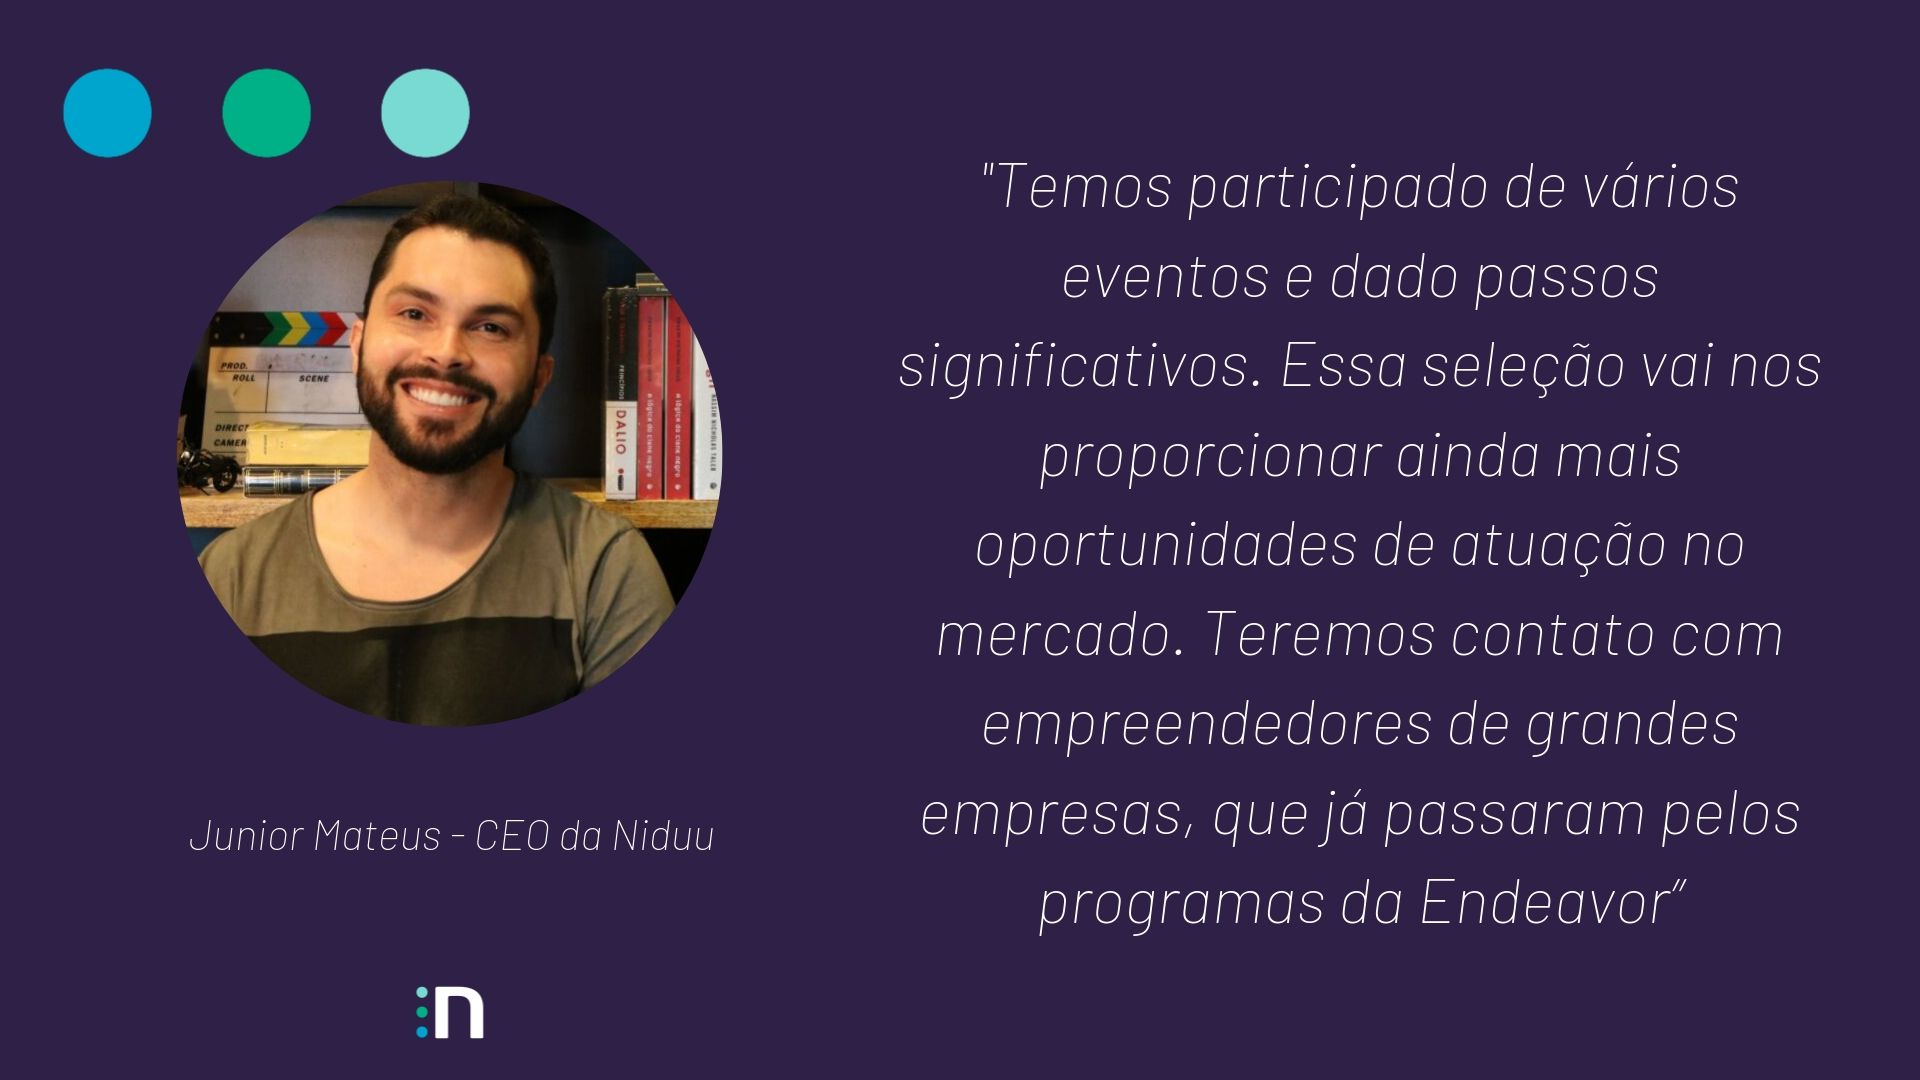 Fala DE Junior Mateus, CEO da Niduu sobre o Scale-Up Endeavor 2019